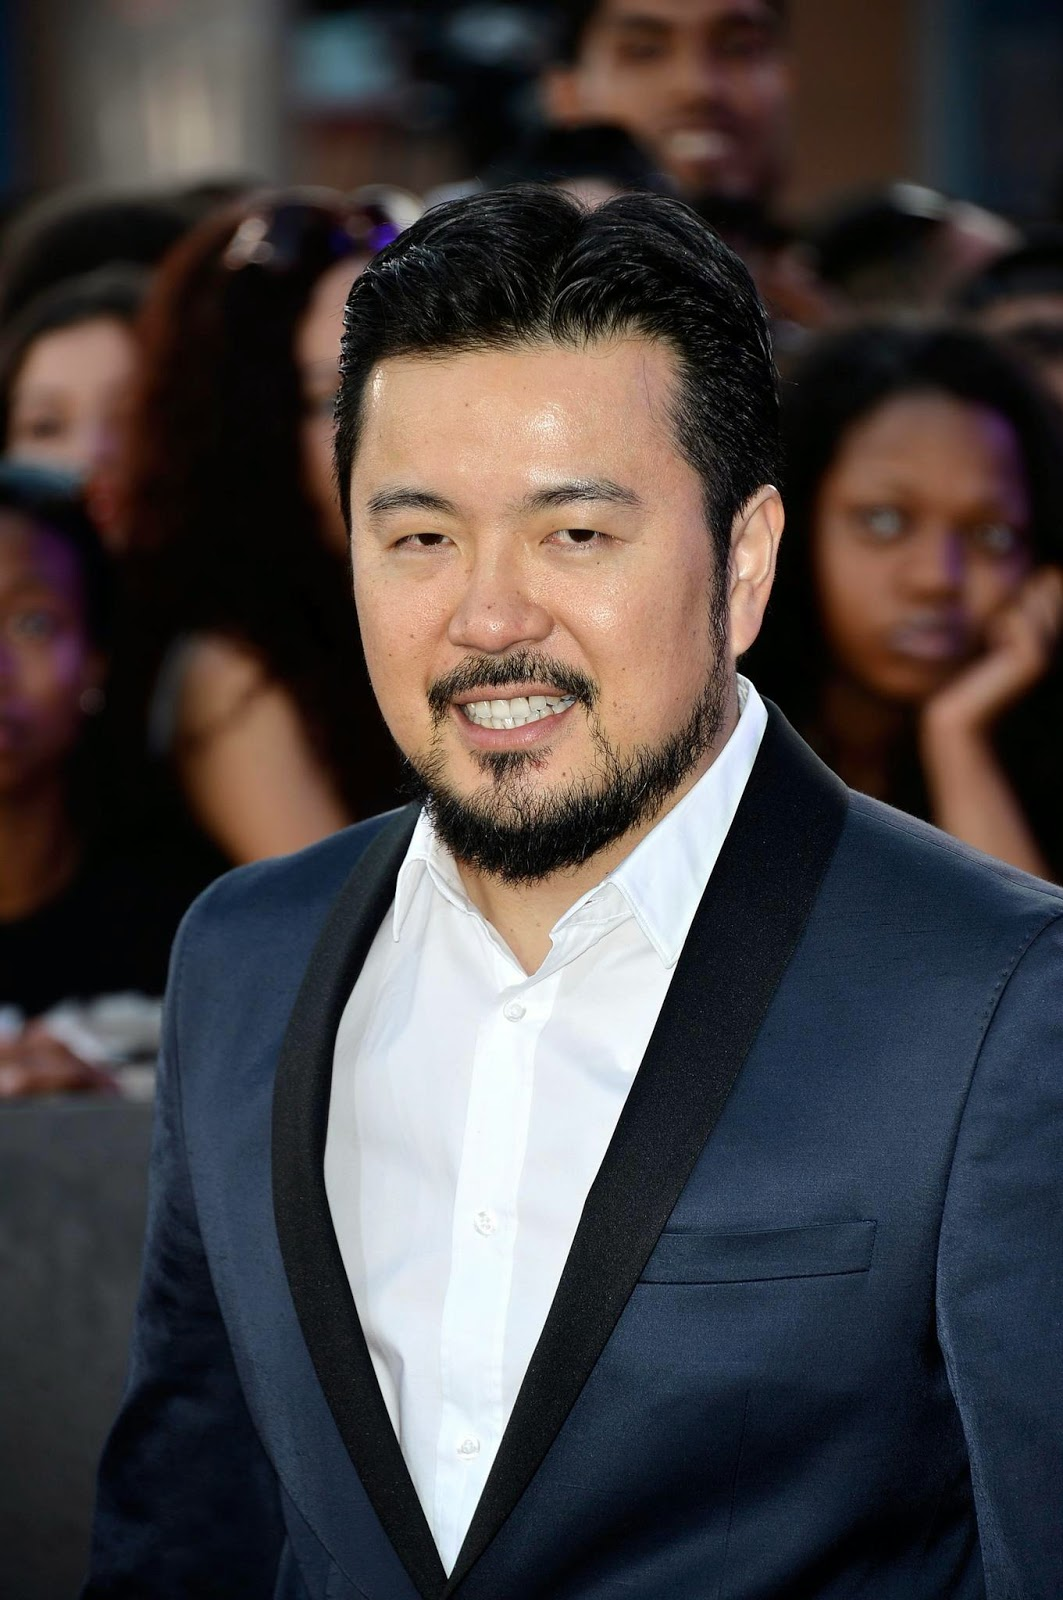 Justin Lin to Direct 'True Detective' Season 2 Episodes